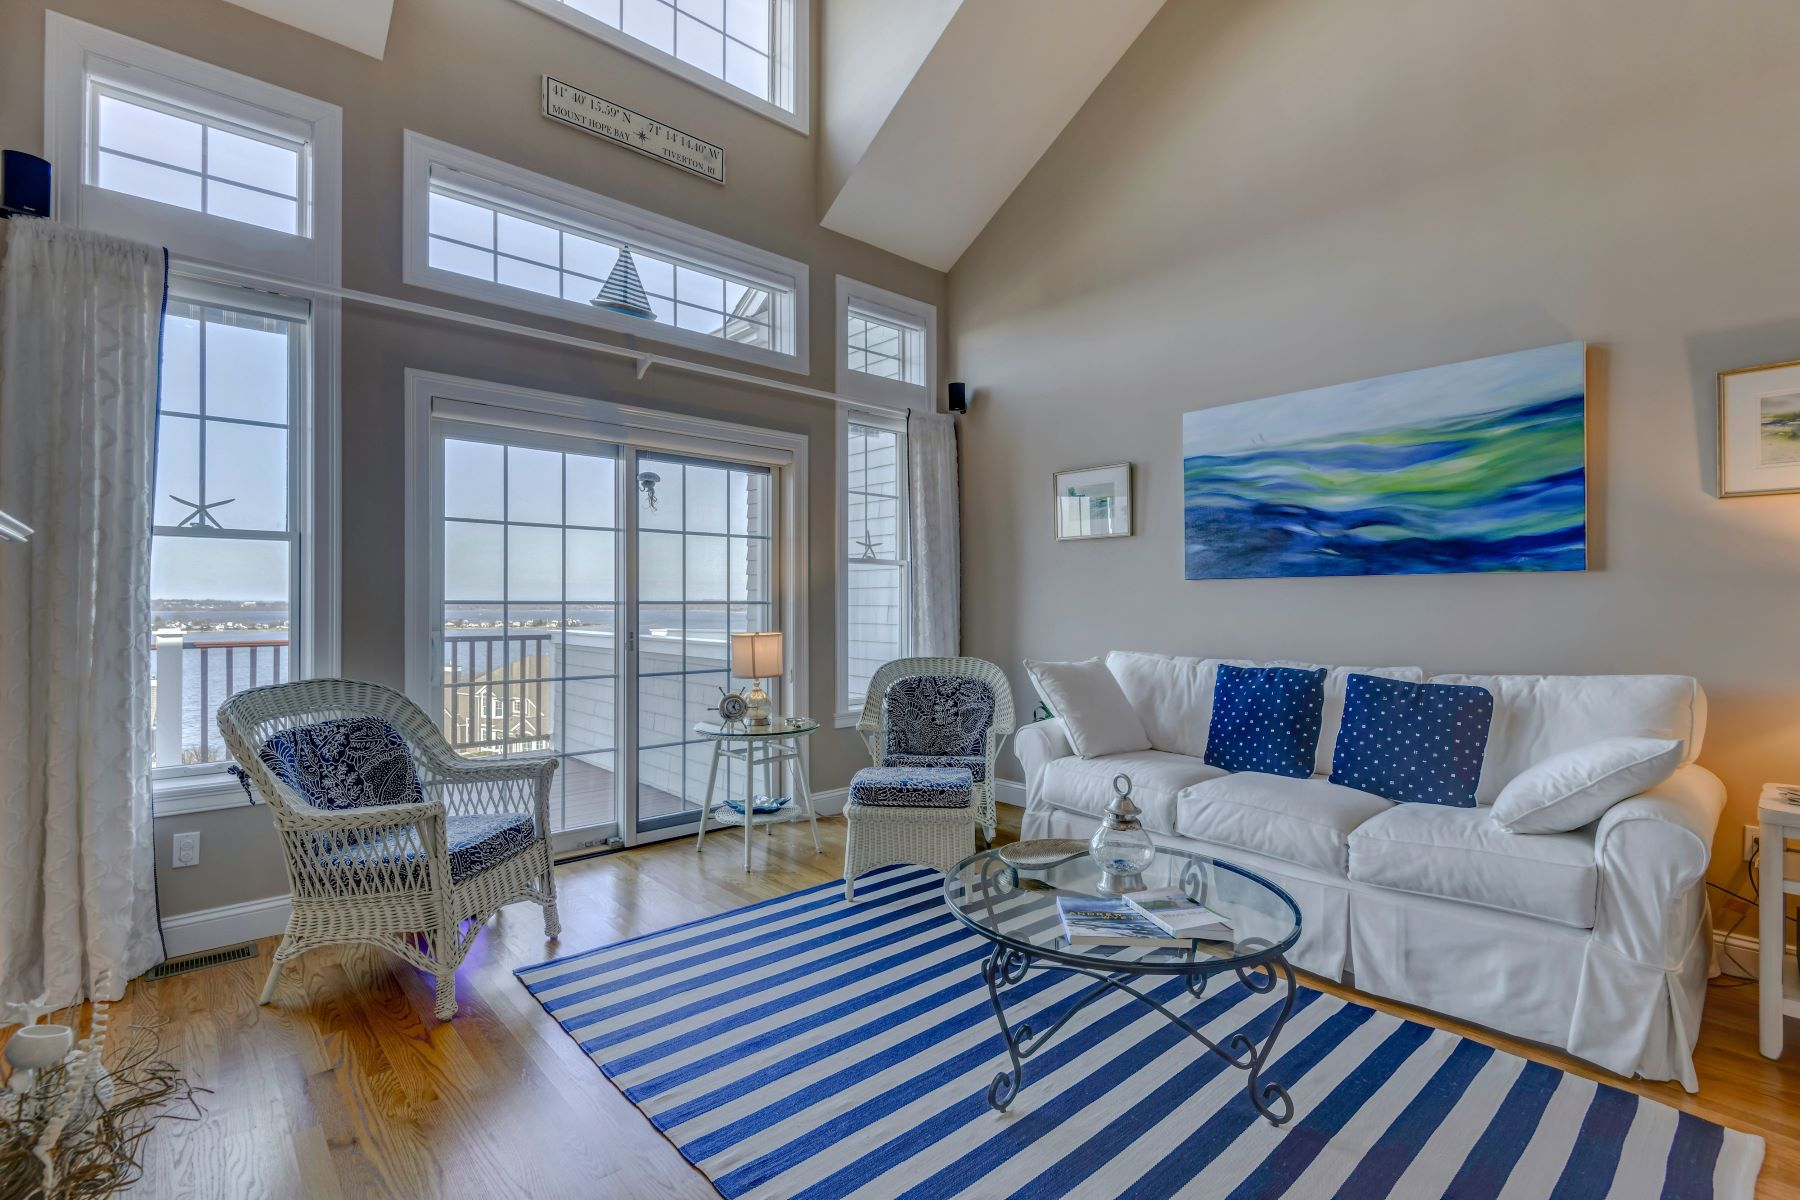 Additional photo for property listing at Luxury Condo at Villages on Mount Hope Bay 21 Watermark Drive Tiverton, Rhode Island 02878 United States